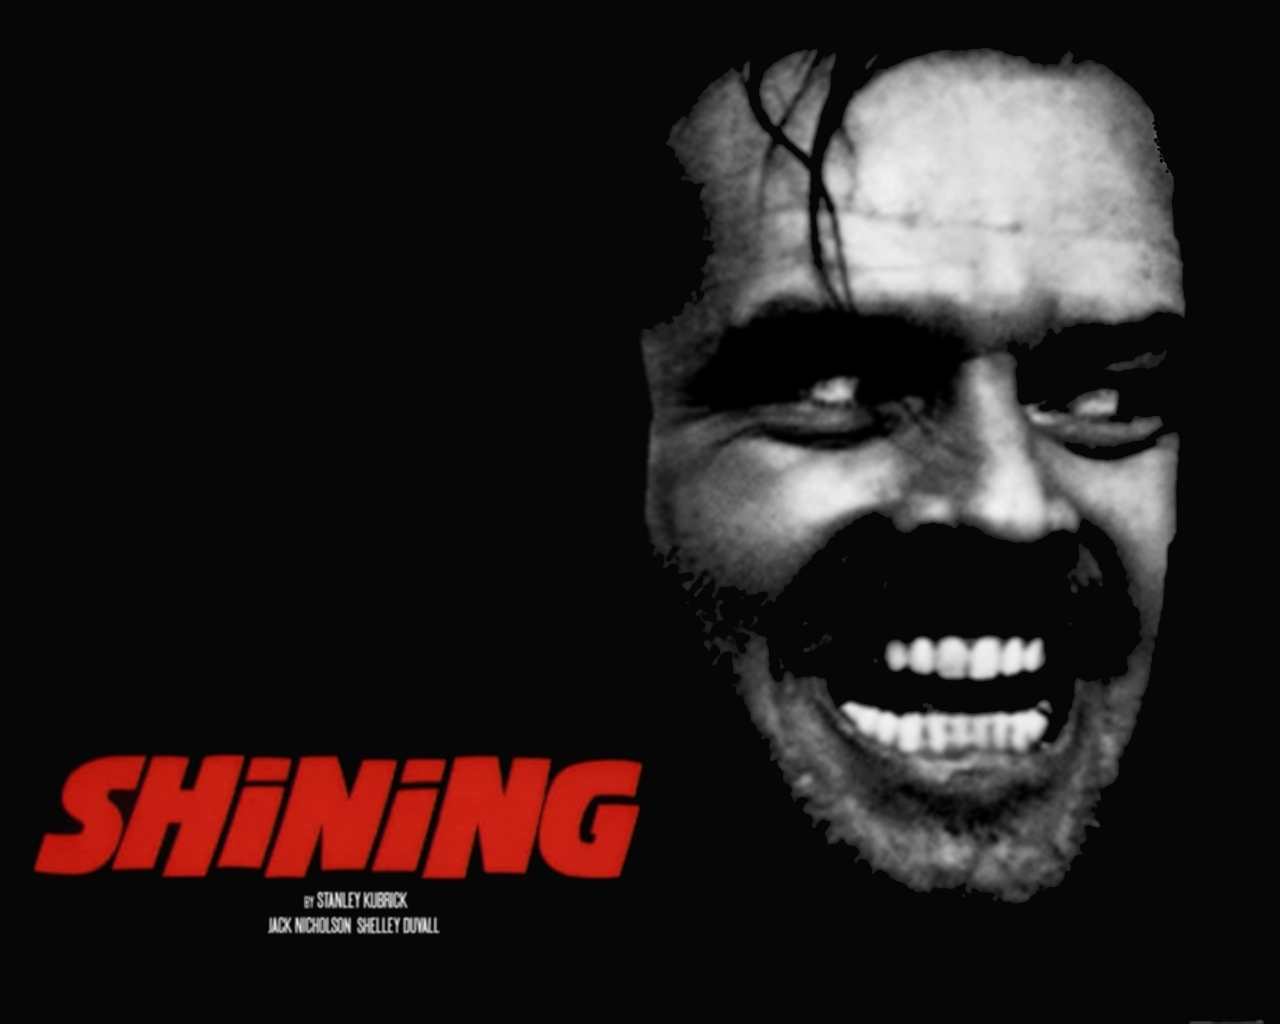 The shining Jack nicholson HD Wallpaper